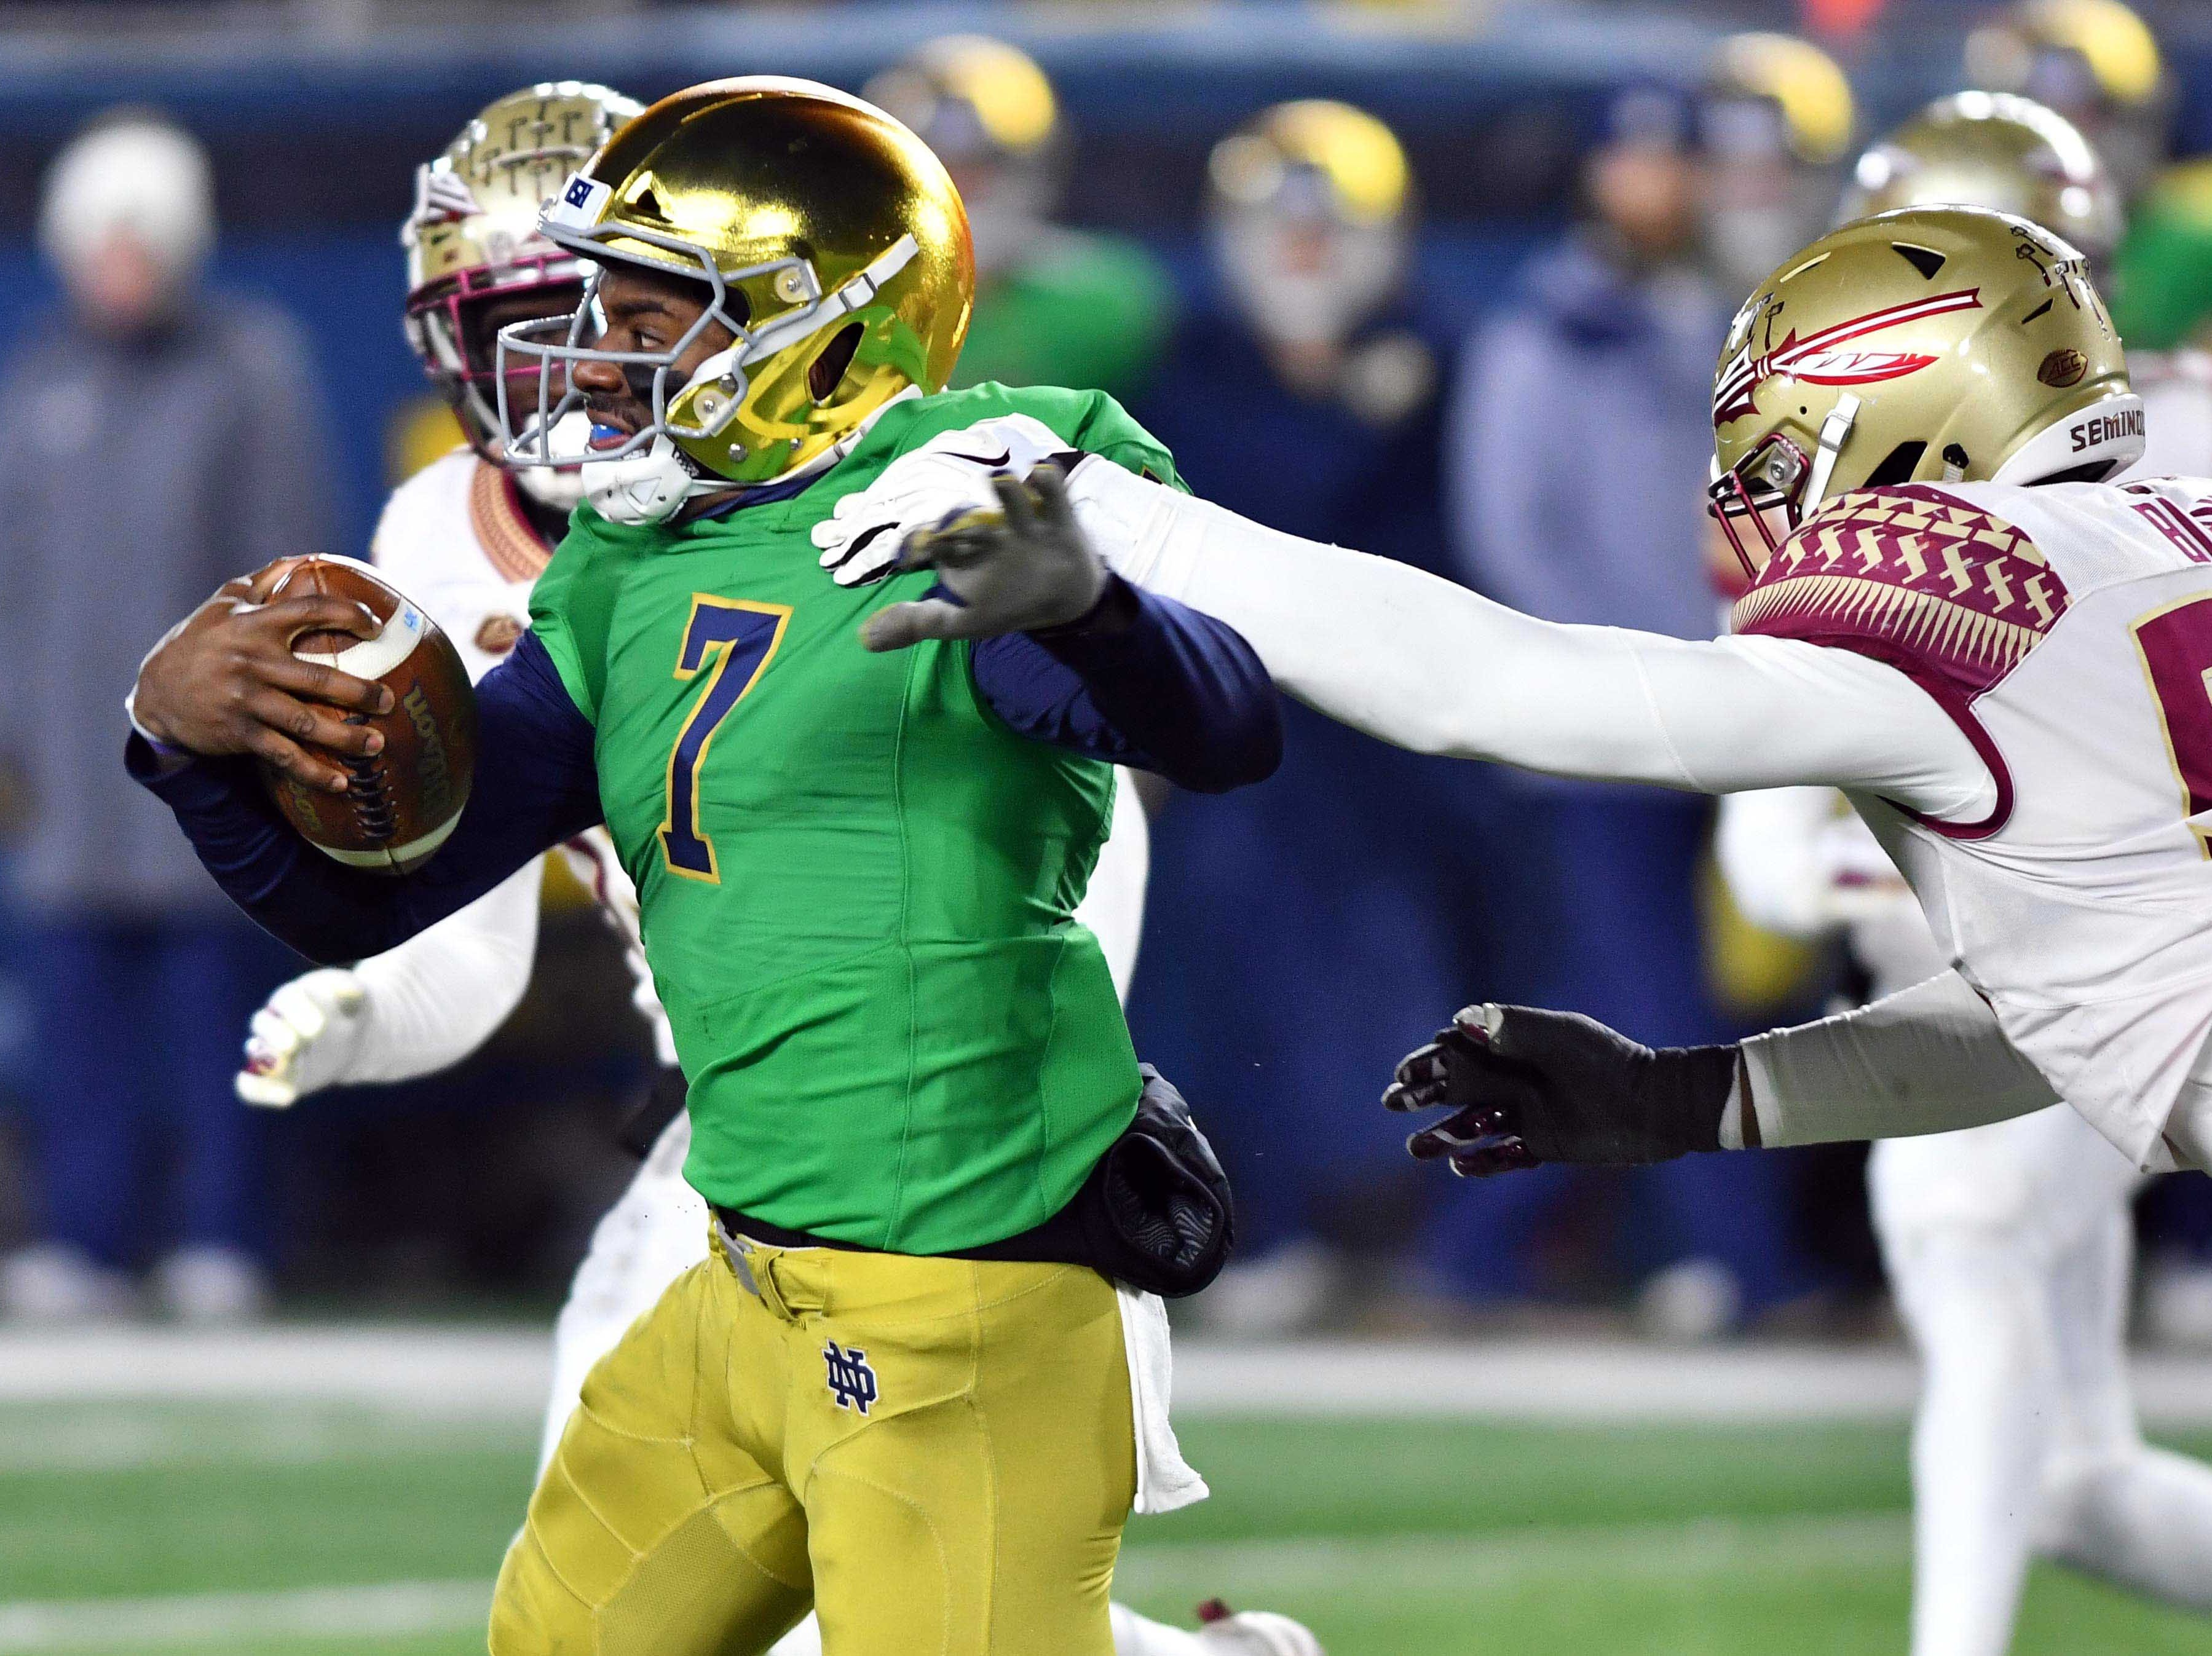 Nov 10, 2018; South Bend, IN, USA; Notre Dame Fighting Irish quarterback Brandon Wimbush (7) runs the ball as Florida State Seminoles defensive end Brian Burns (99) attempts to tackle in the second quarter at Notre Dame Stadium. Mandatory Credit: Matt Cashore-USA TODAY Sports